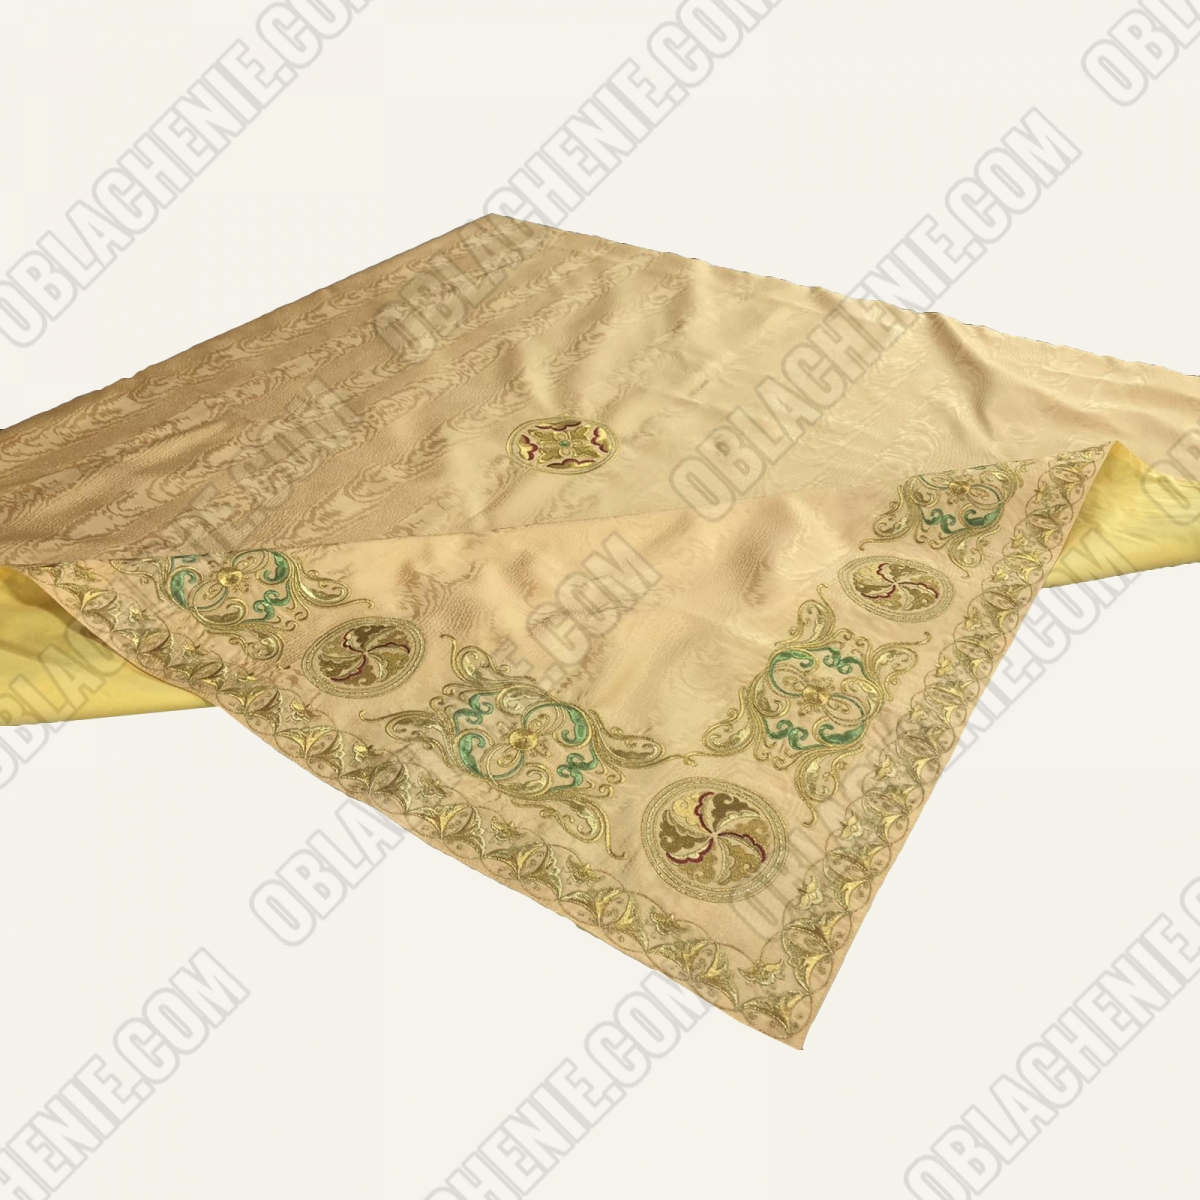 HOLY TABLE VESTMENTS 11369